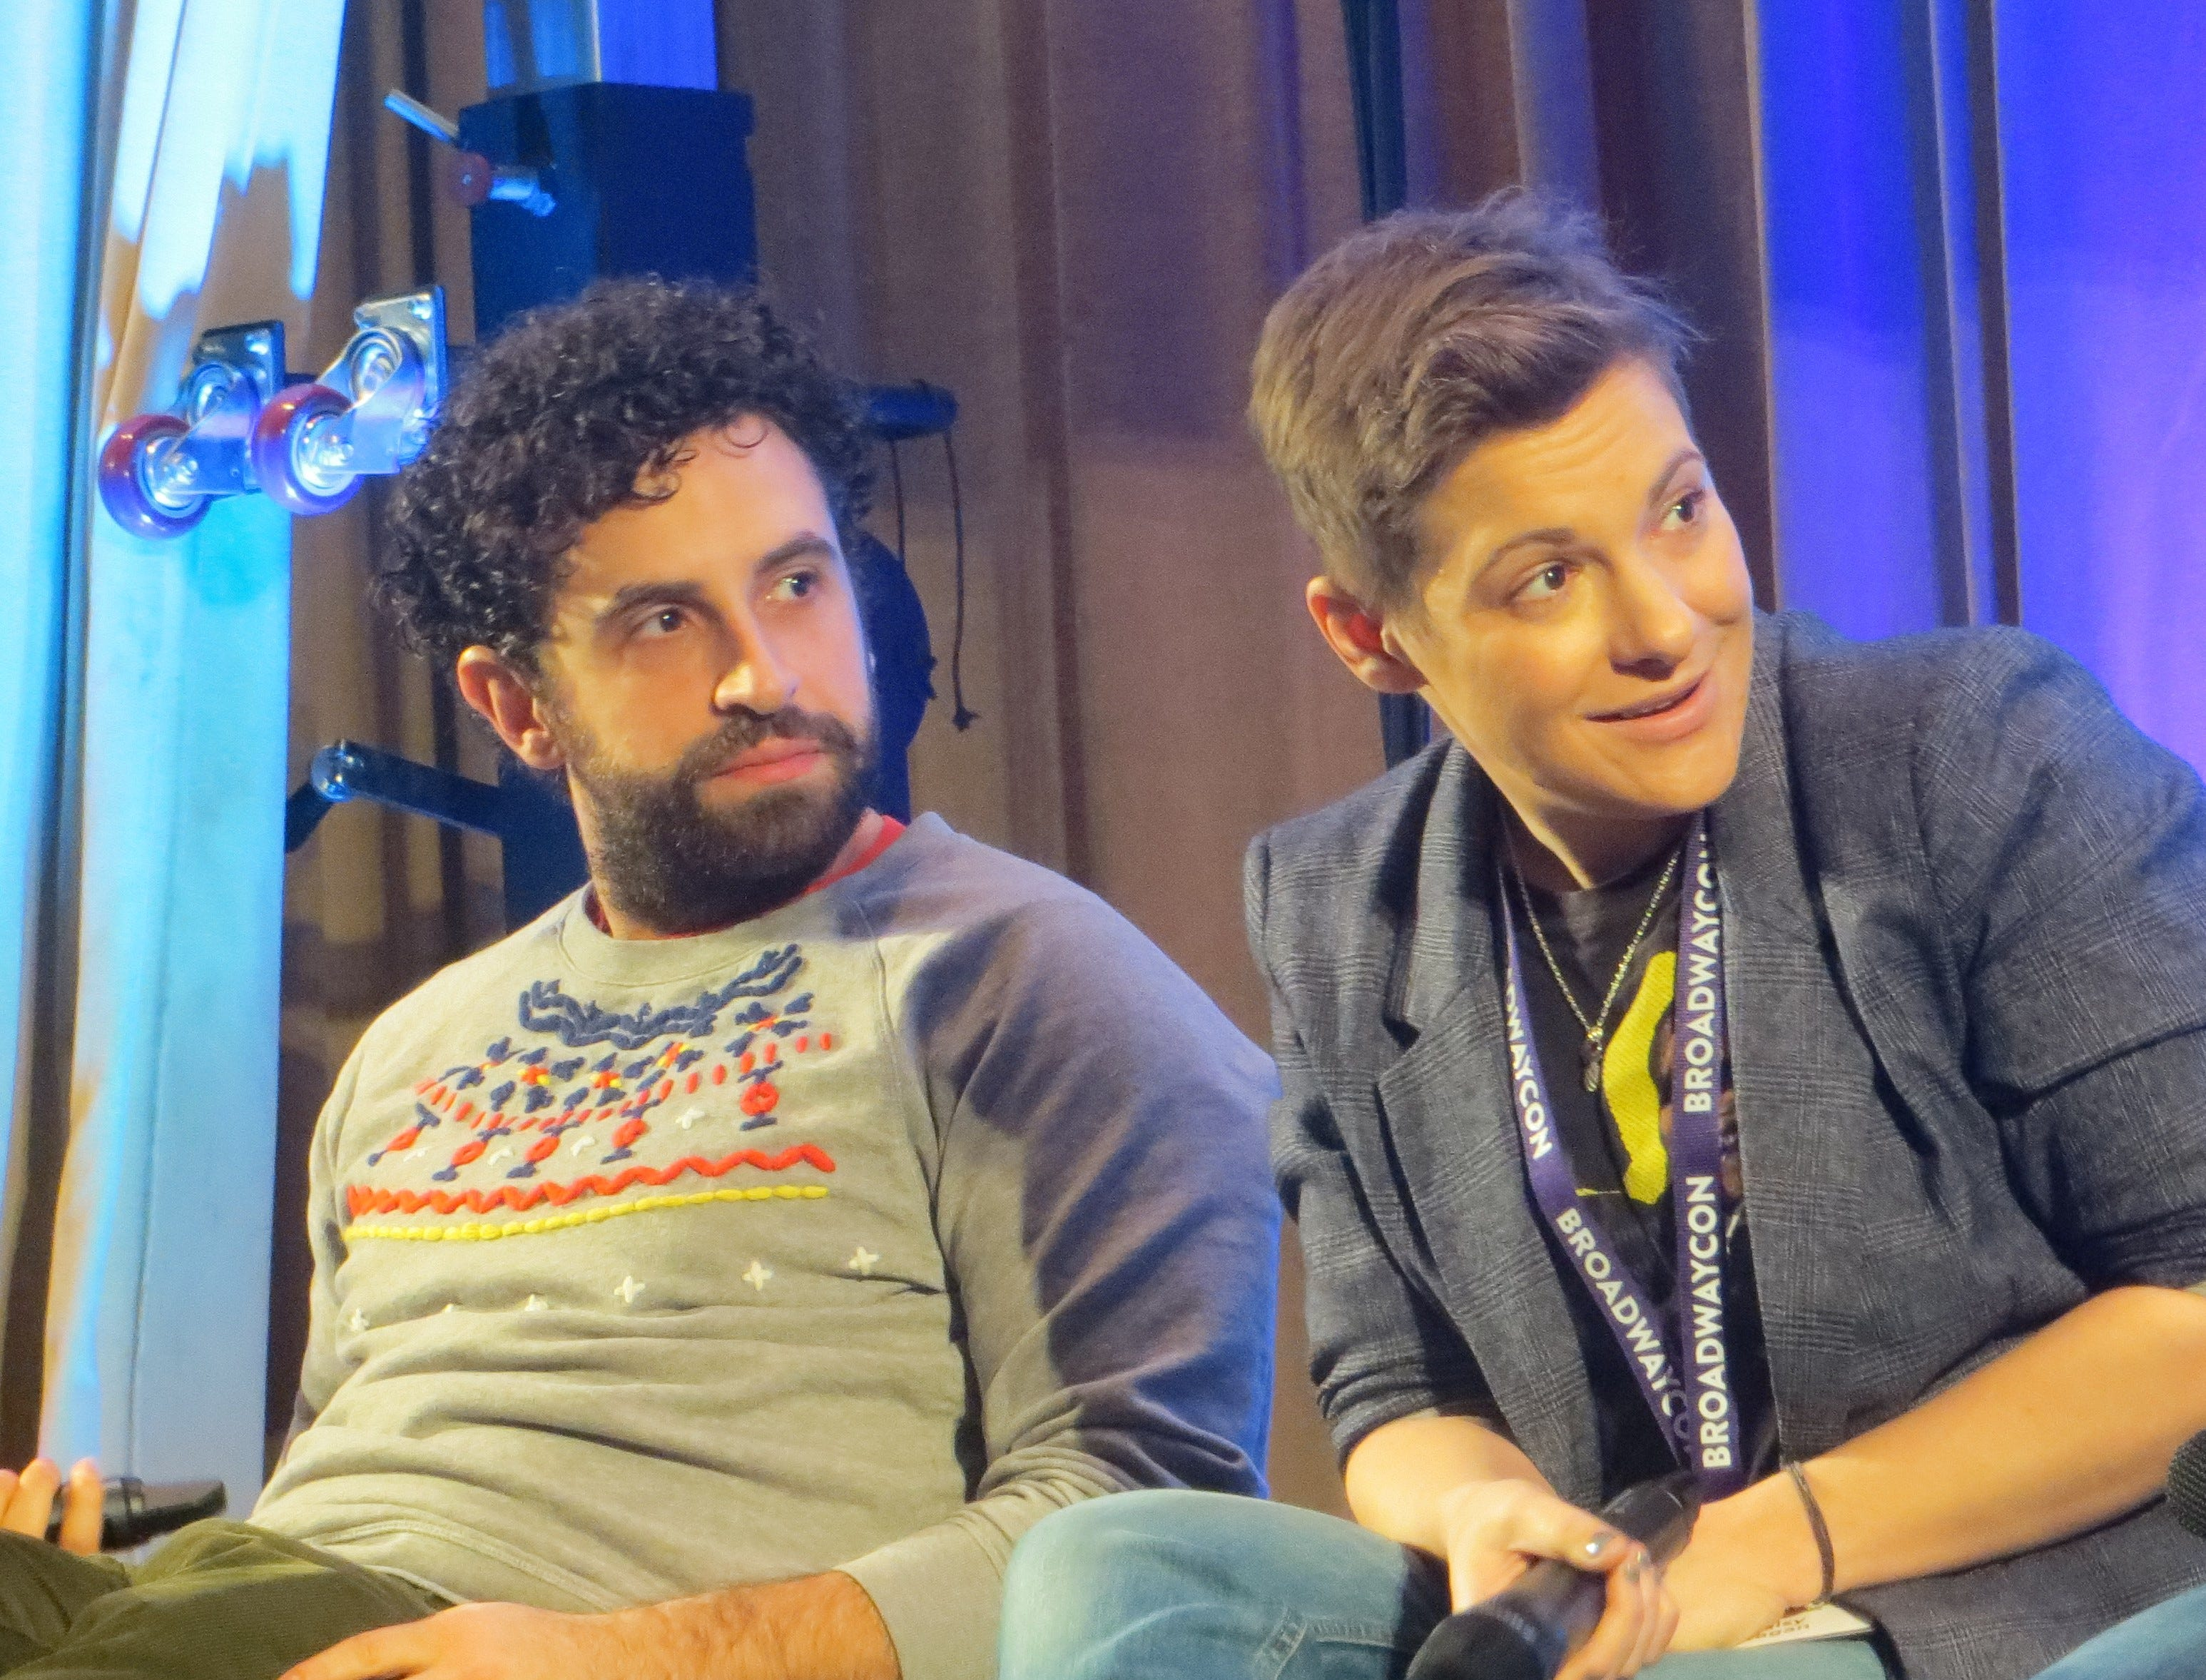 Brandon Uranowitz and Daisy Eagan take part in the Out on Broadway panel                             at BroadwayCon 2019, held Jan. 11 to 13, 2019, at the New York Hilton Midtown in Manhattan.